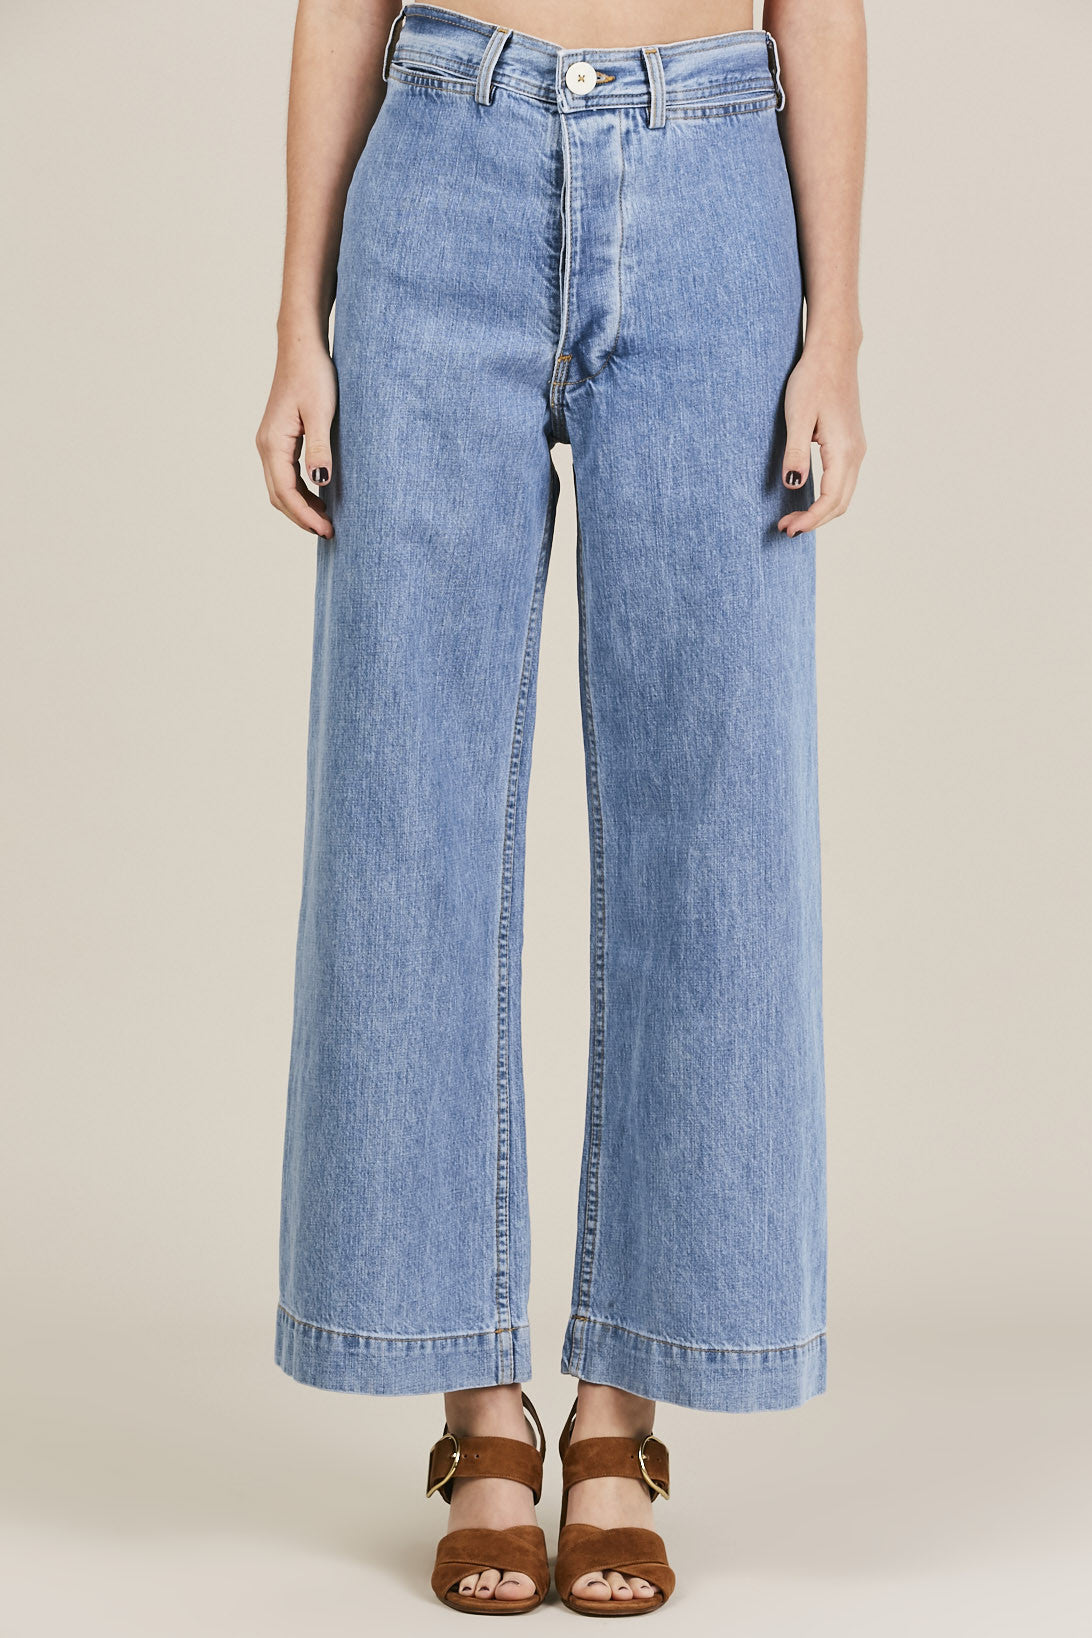 Jesse Kamm - Sailor Pant, Denim - Pants